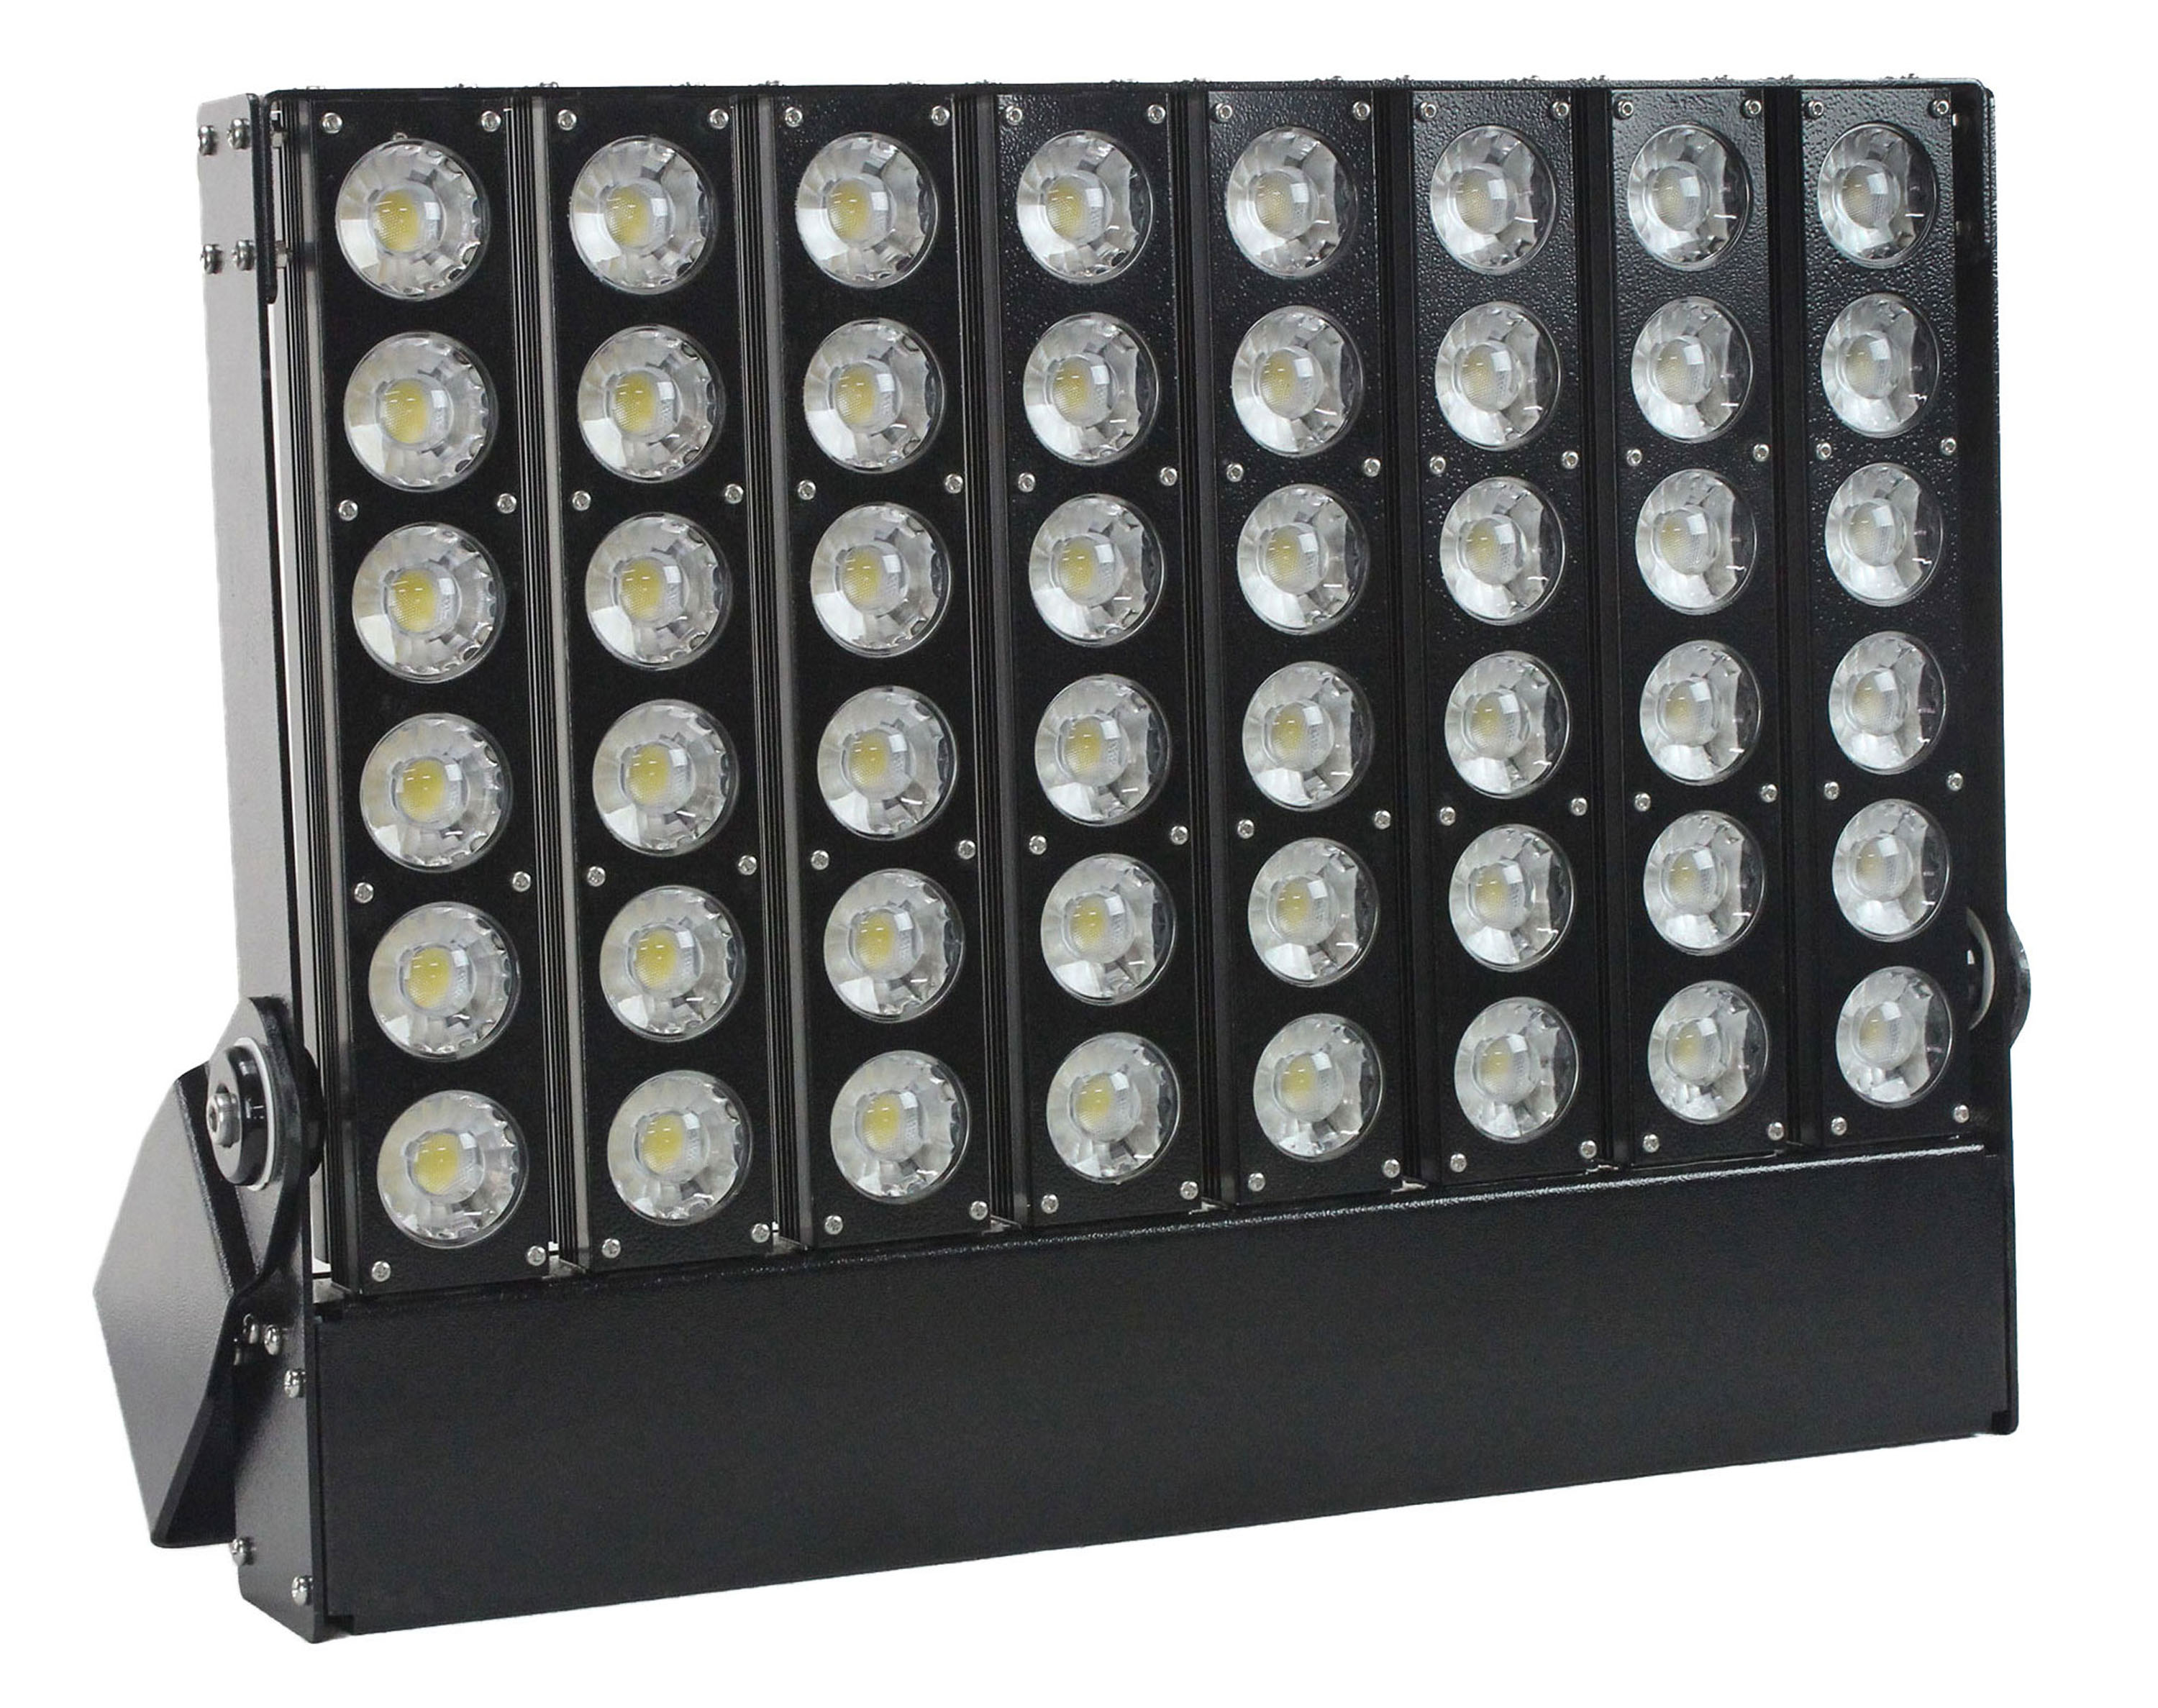 500 Watt High Intensity Led Light For 480v Operation